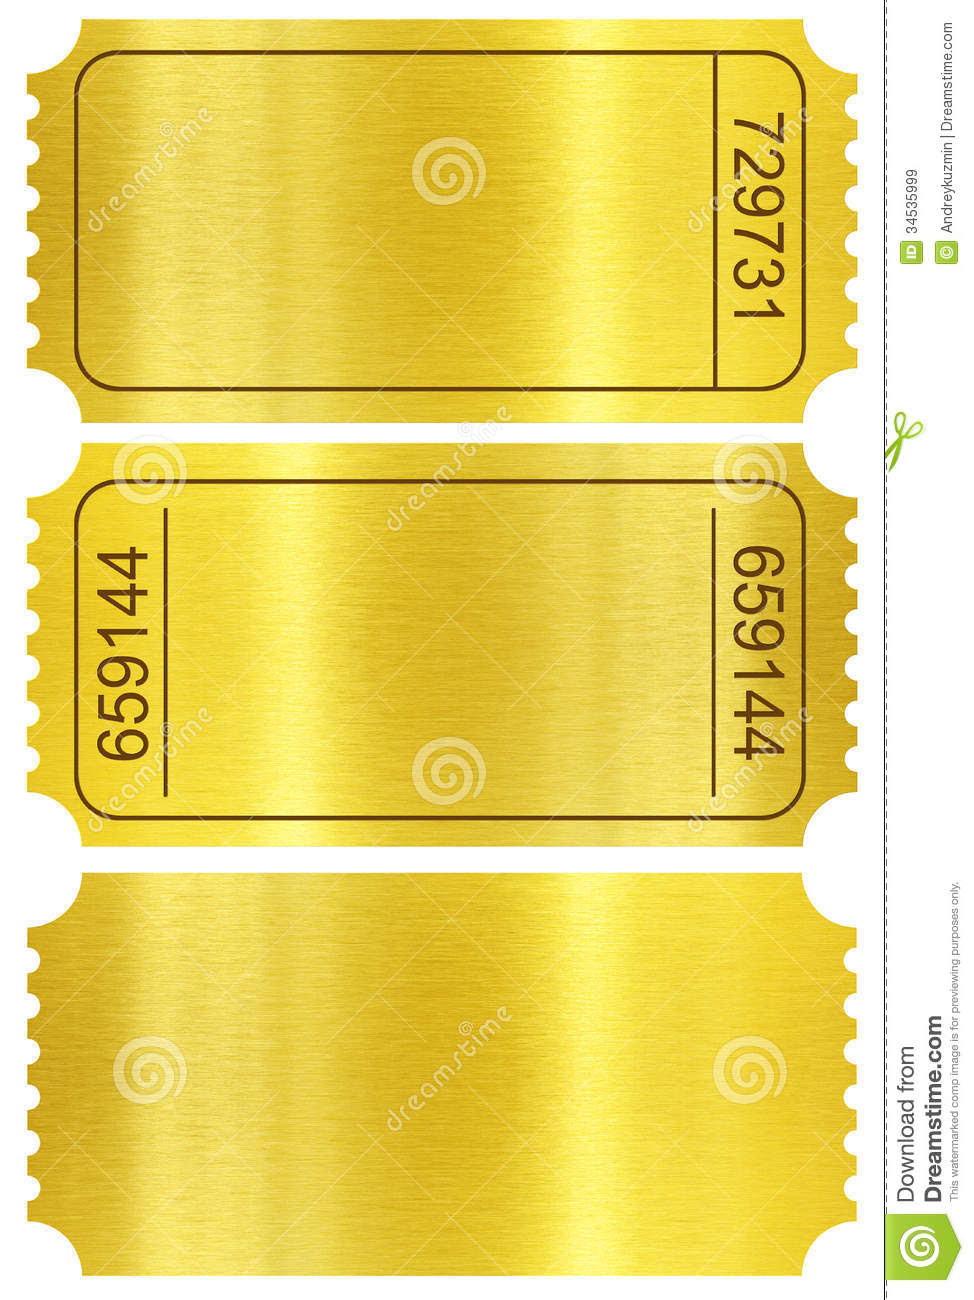 Ticket Set. Golden Ticket Stubs Isolated On White Royalty Free ...